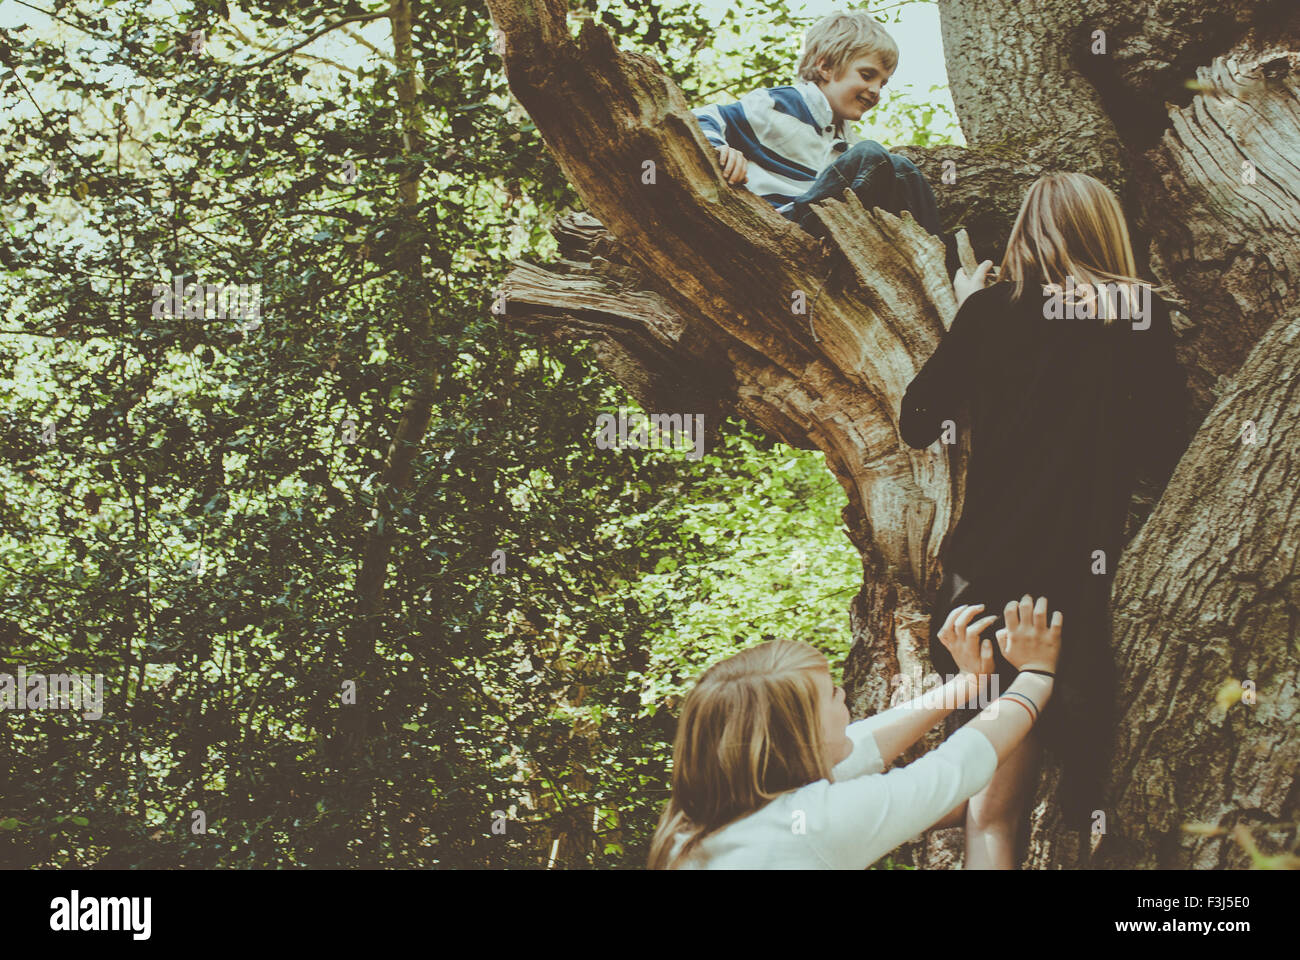 Kids helping each other up a tree Stock Photo, Royalty Free Image ...